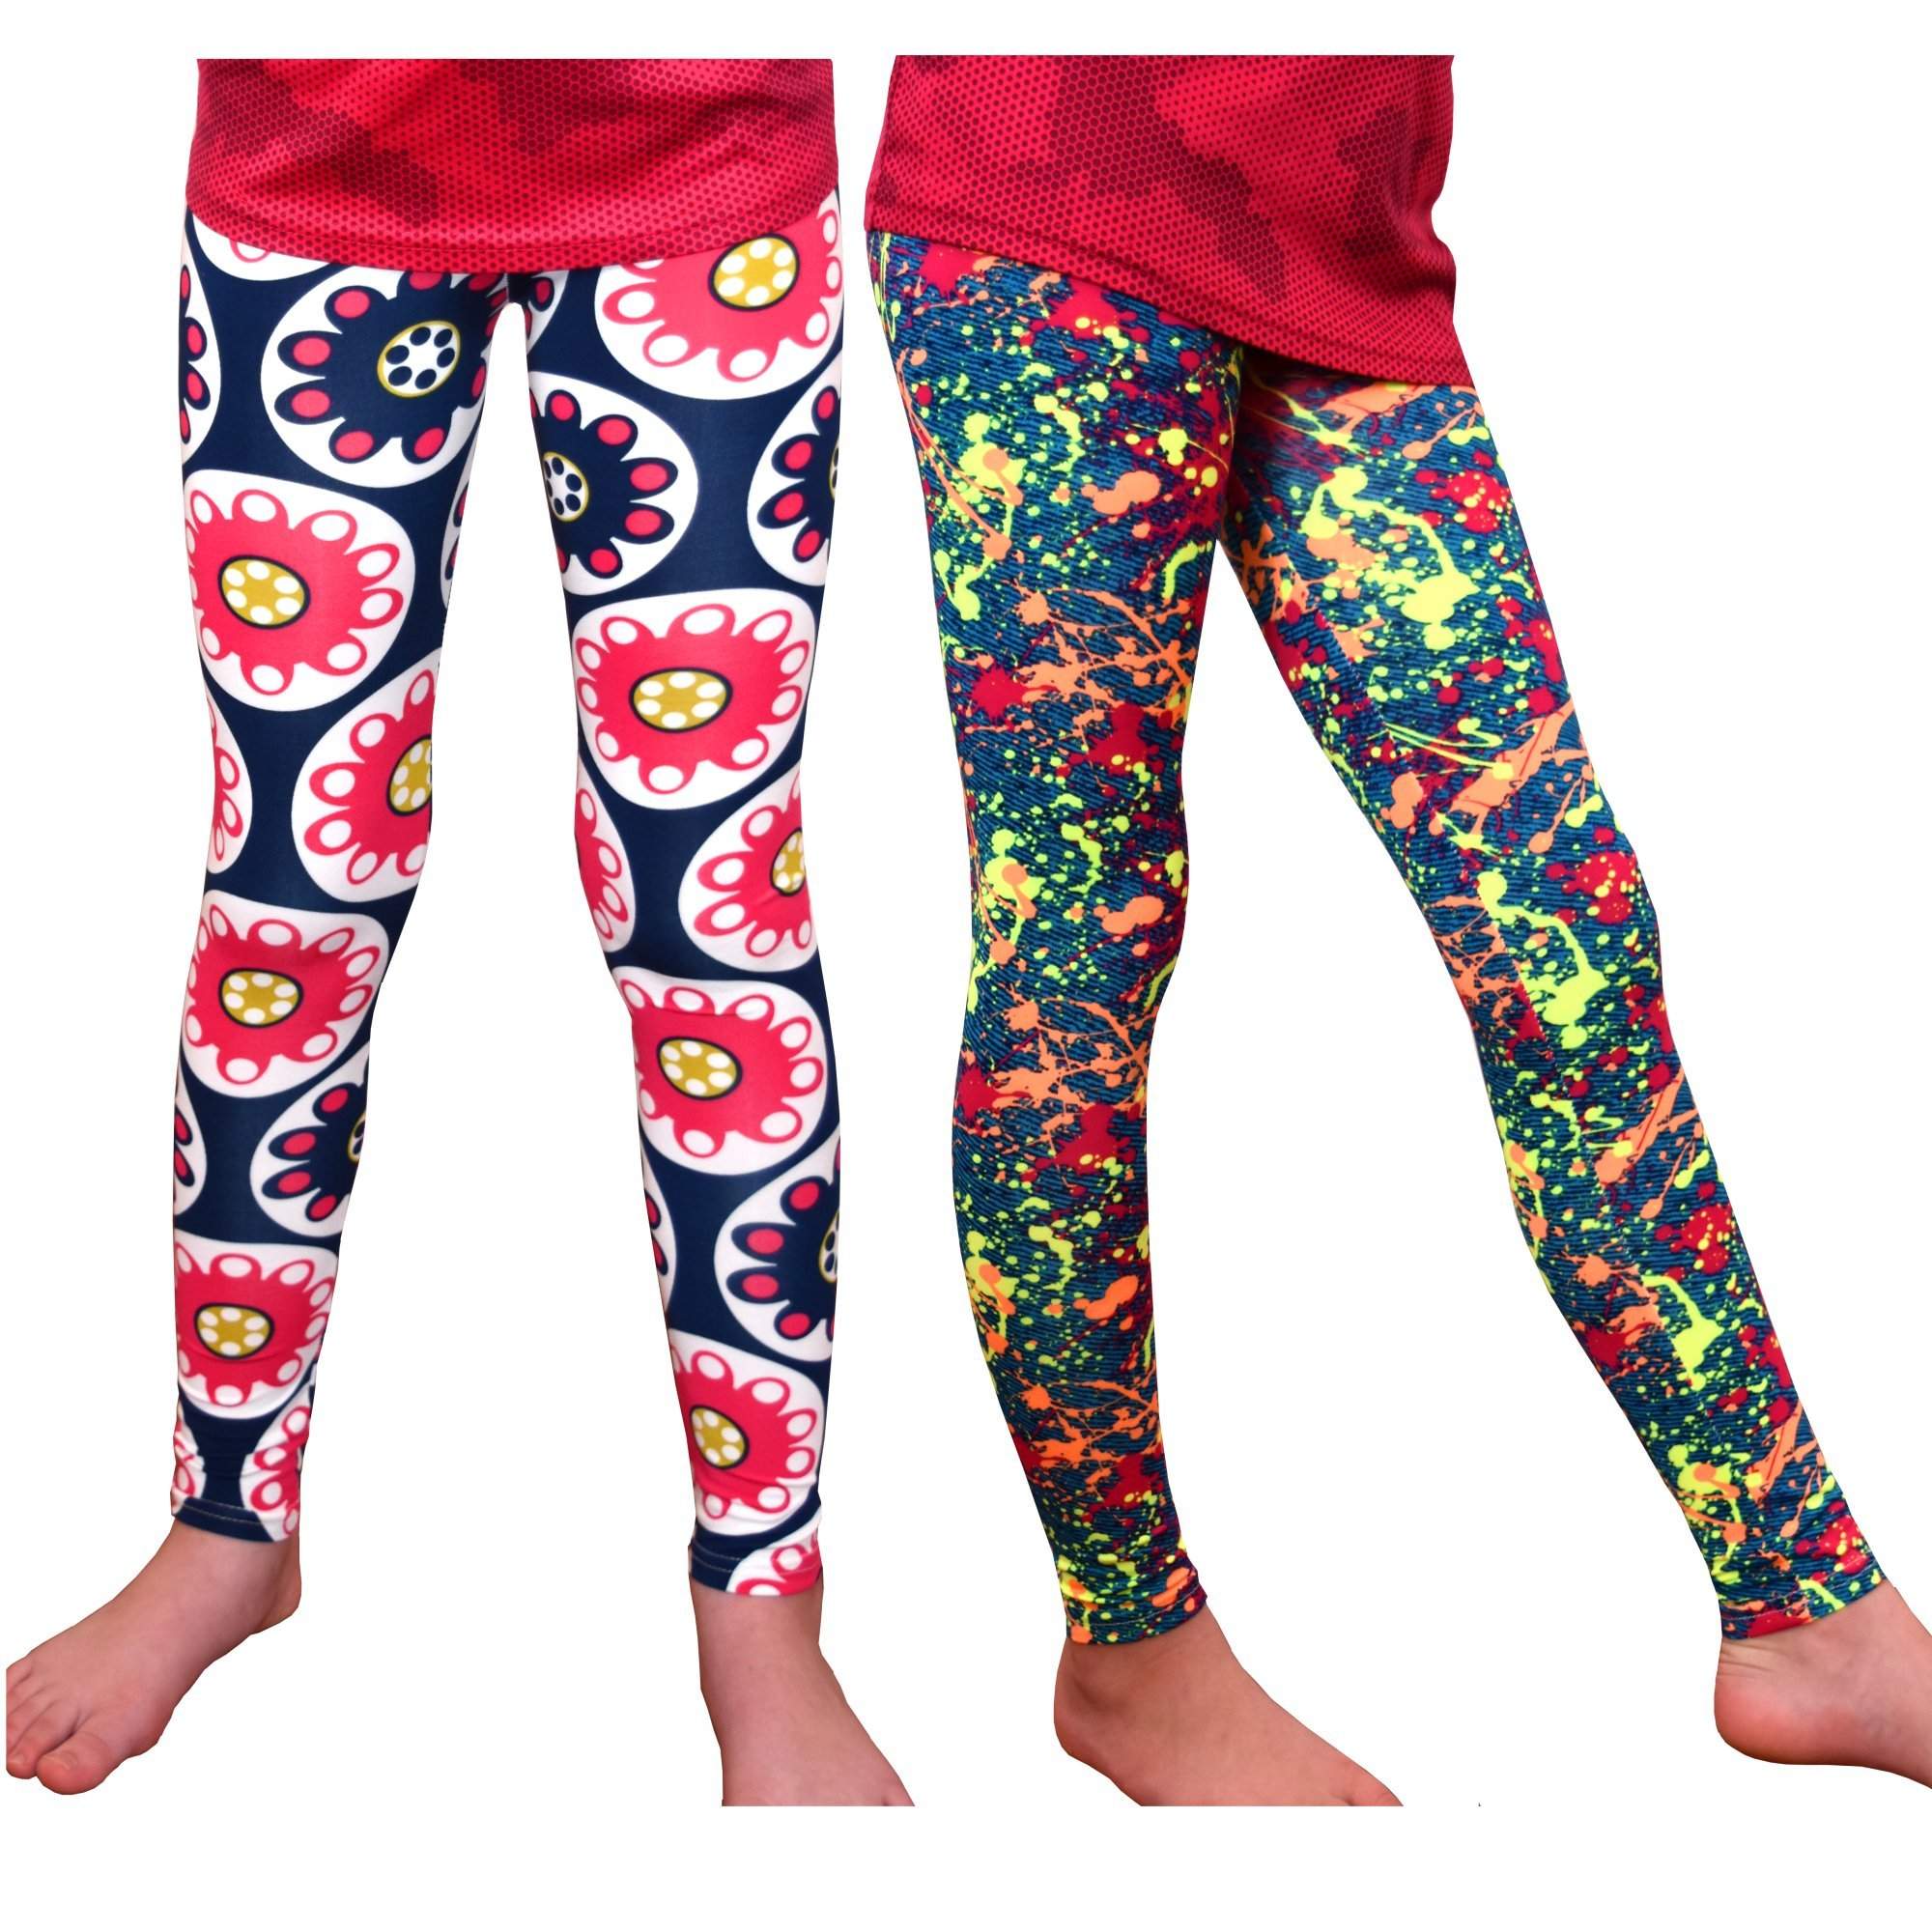 Syleia Girl High Rise Leggings Set Of 2 Medium (Age 7-8) Bright Patterns